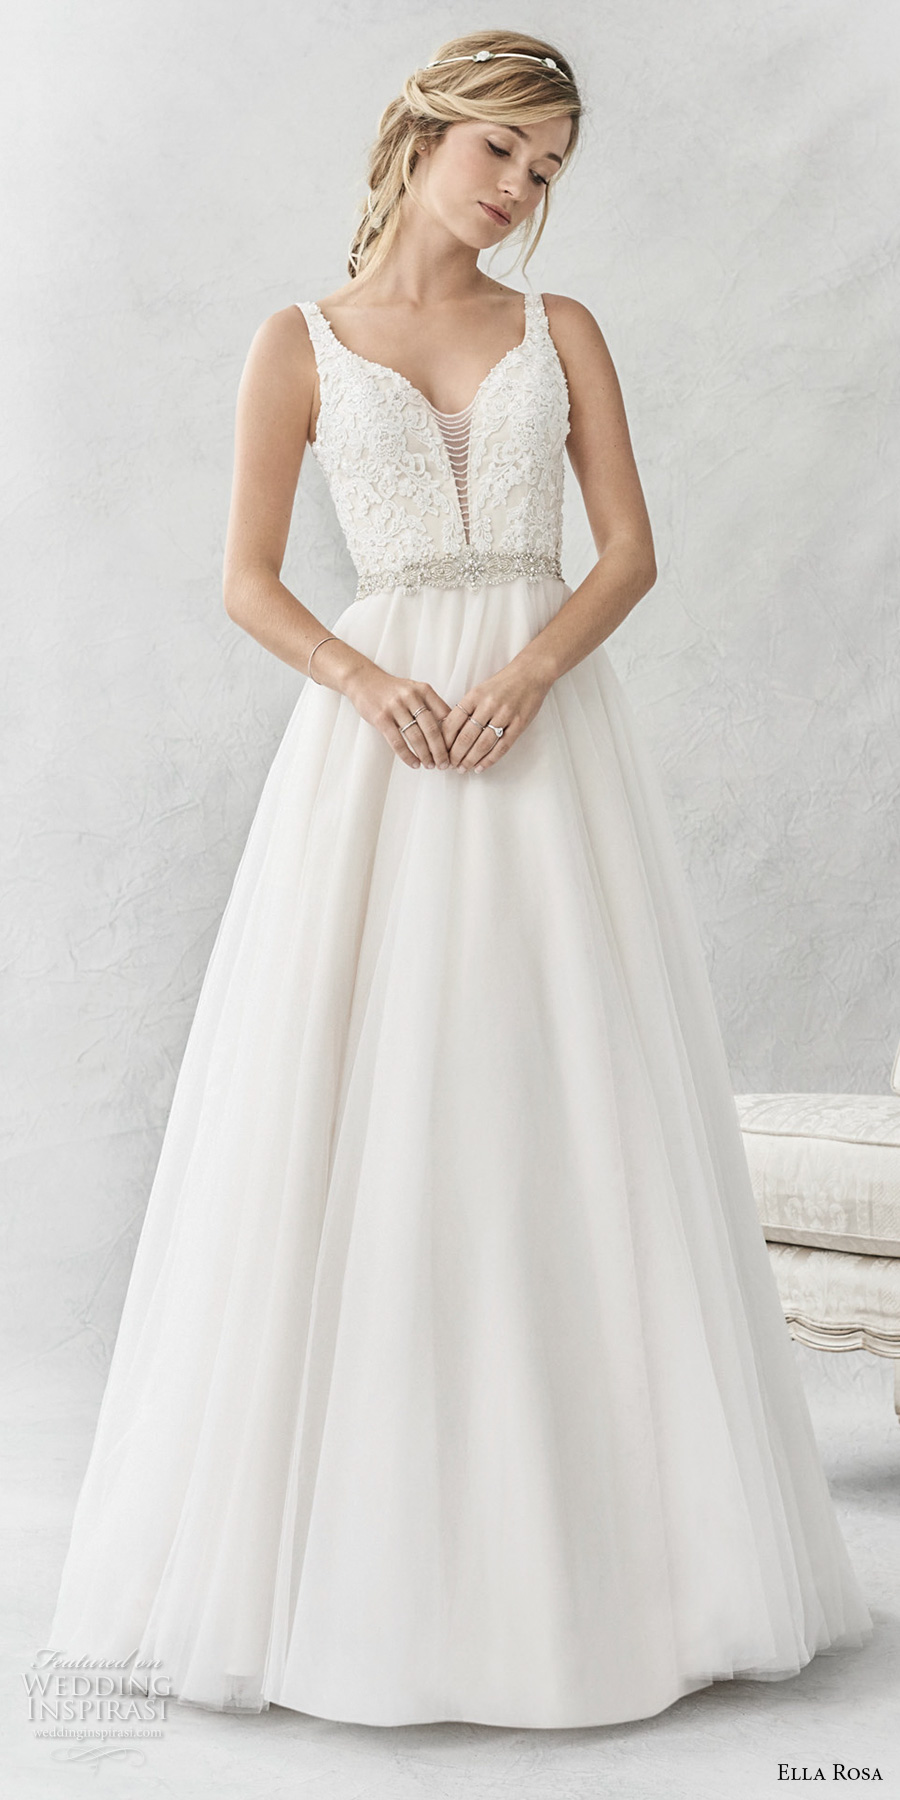 ella rosa spring 2017 bridal sleeveless with strap deep plunging sweetheart neckline heavily embellished bodice open scoop back sweep train (358) mv